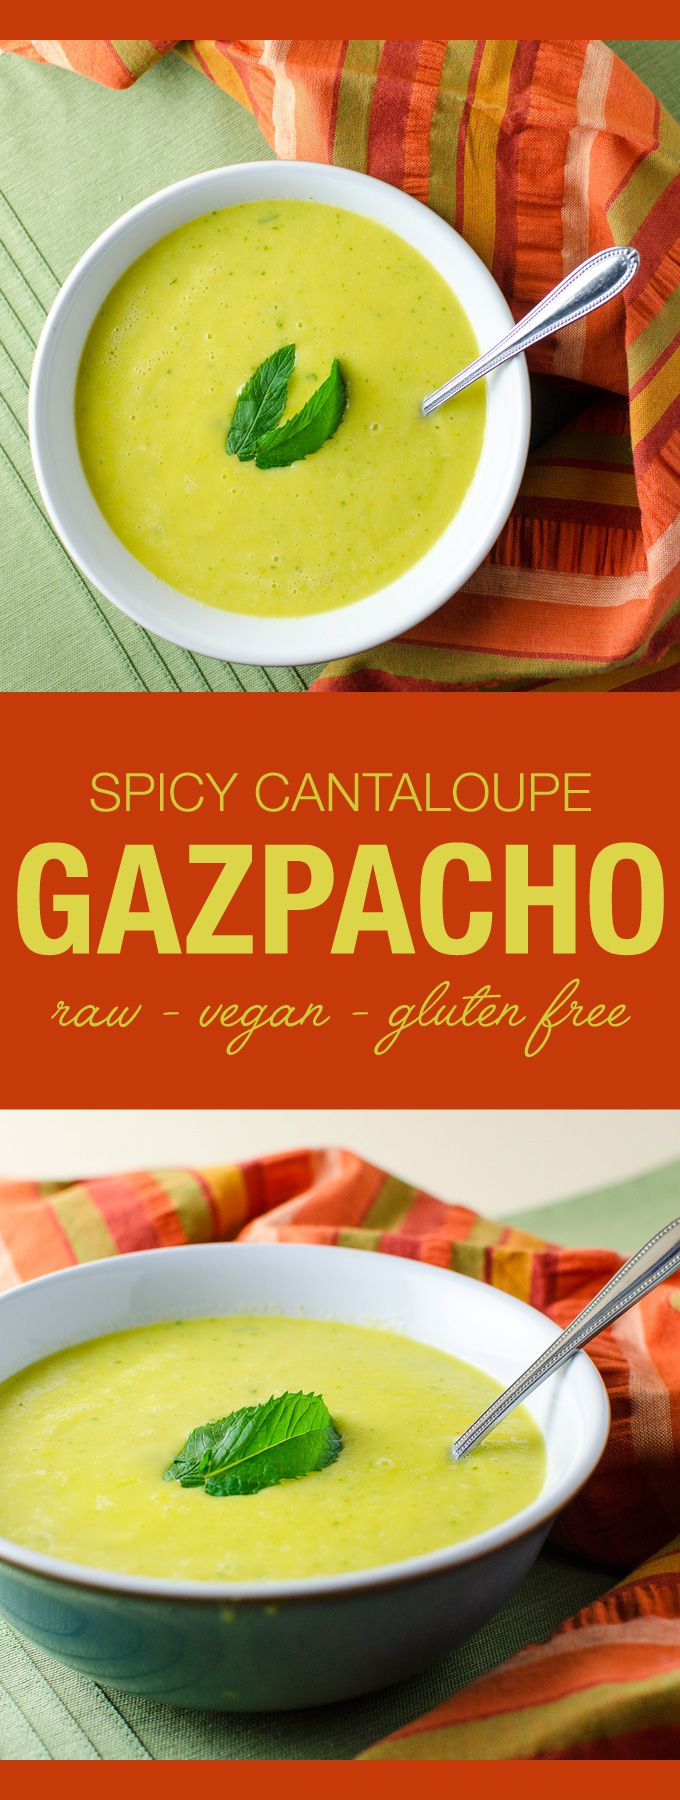 Spicy Cantaloupe Gazpacho - this vegan and gluten free cold soup recipe features a pleasing mix of zesty and refreshing flavors | VeggiePrimer.com